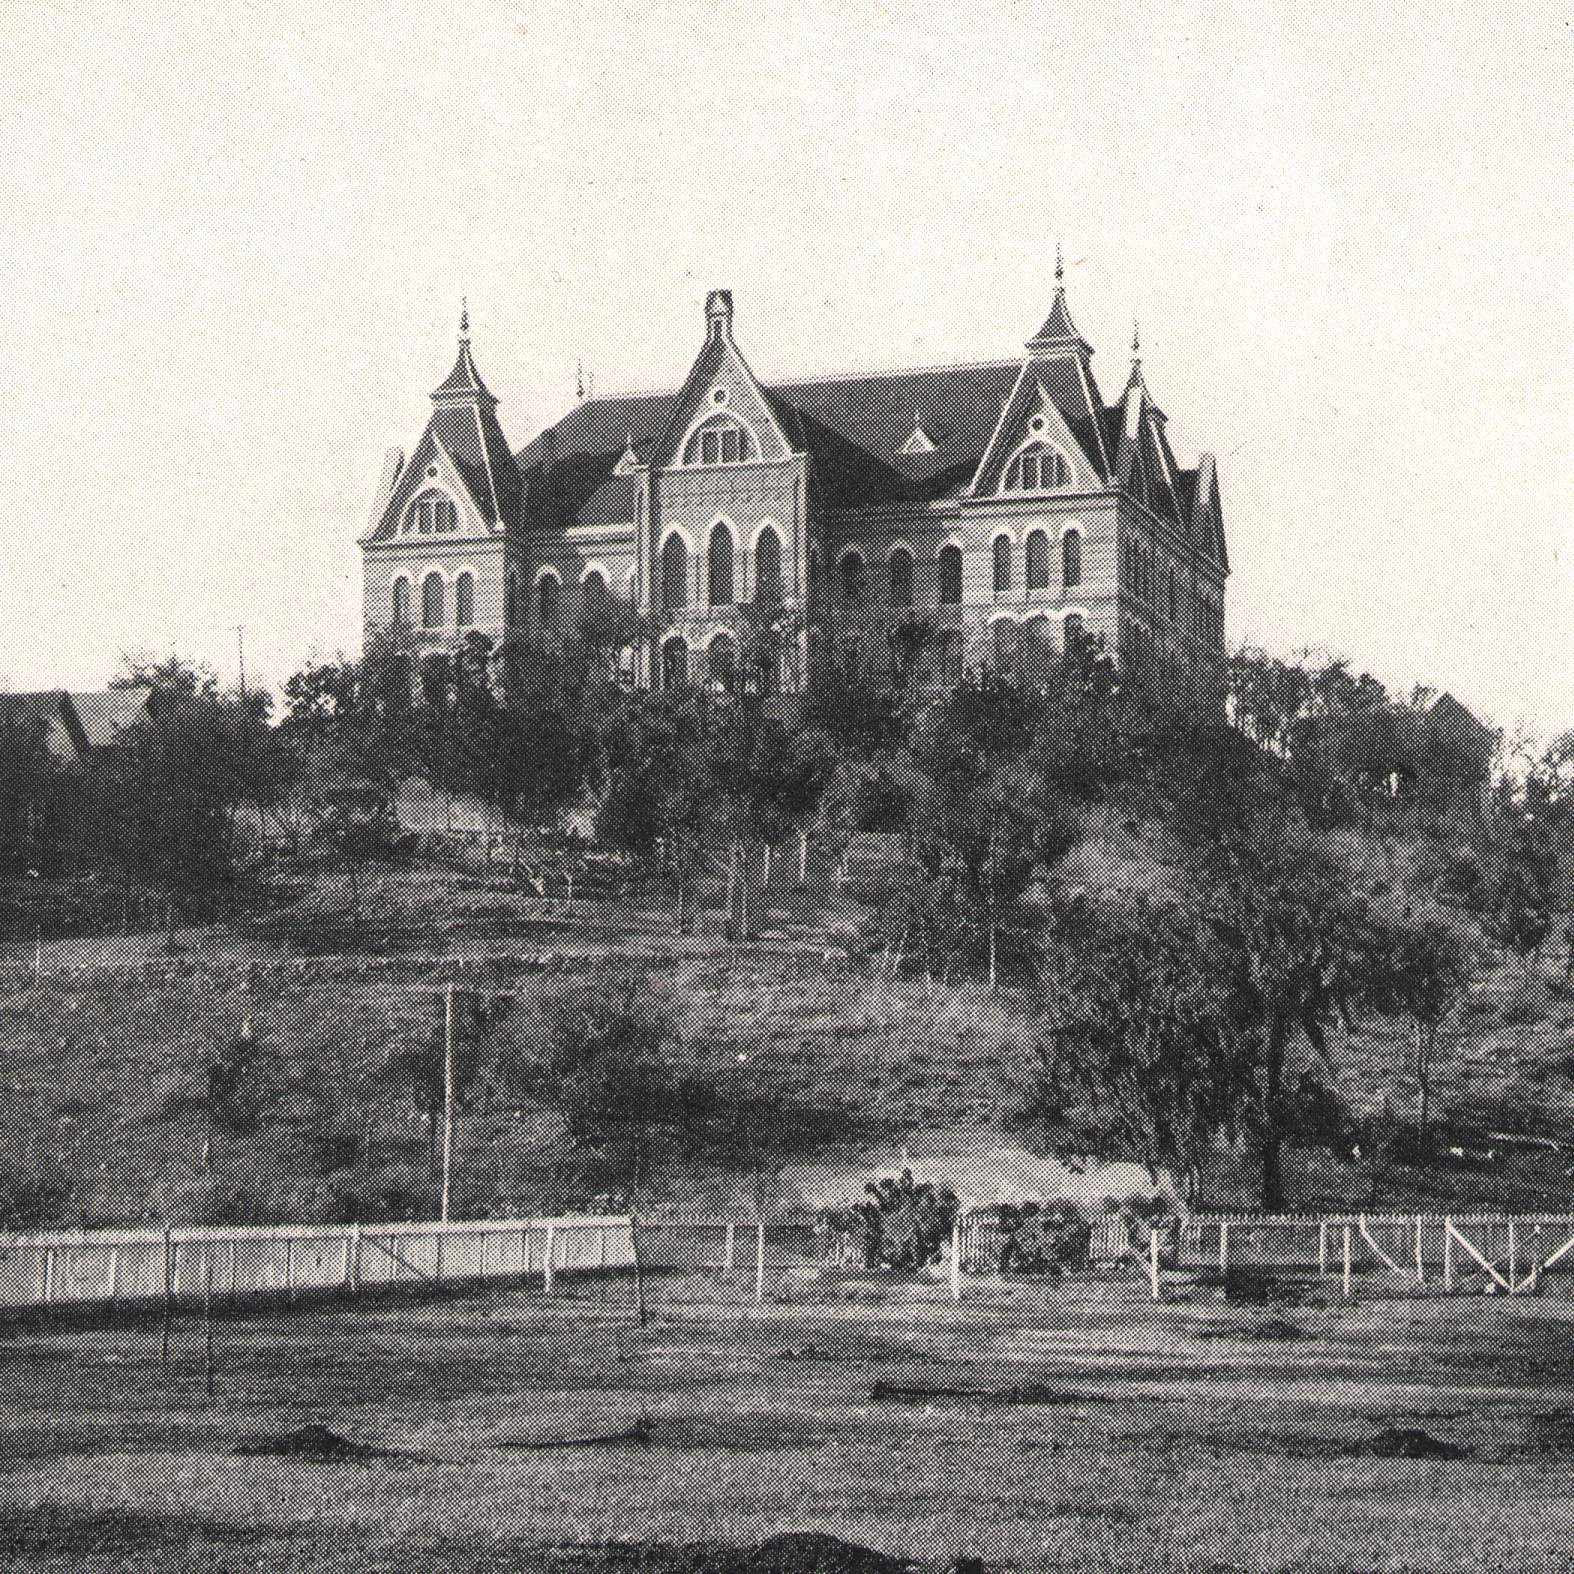 early 1900's image of Old Main at the top of the hill